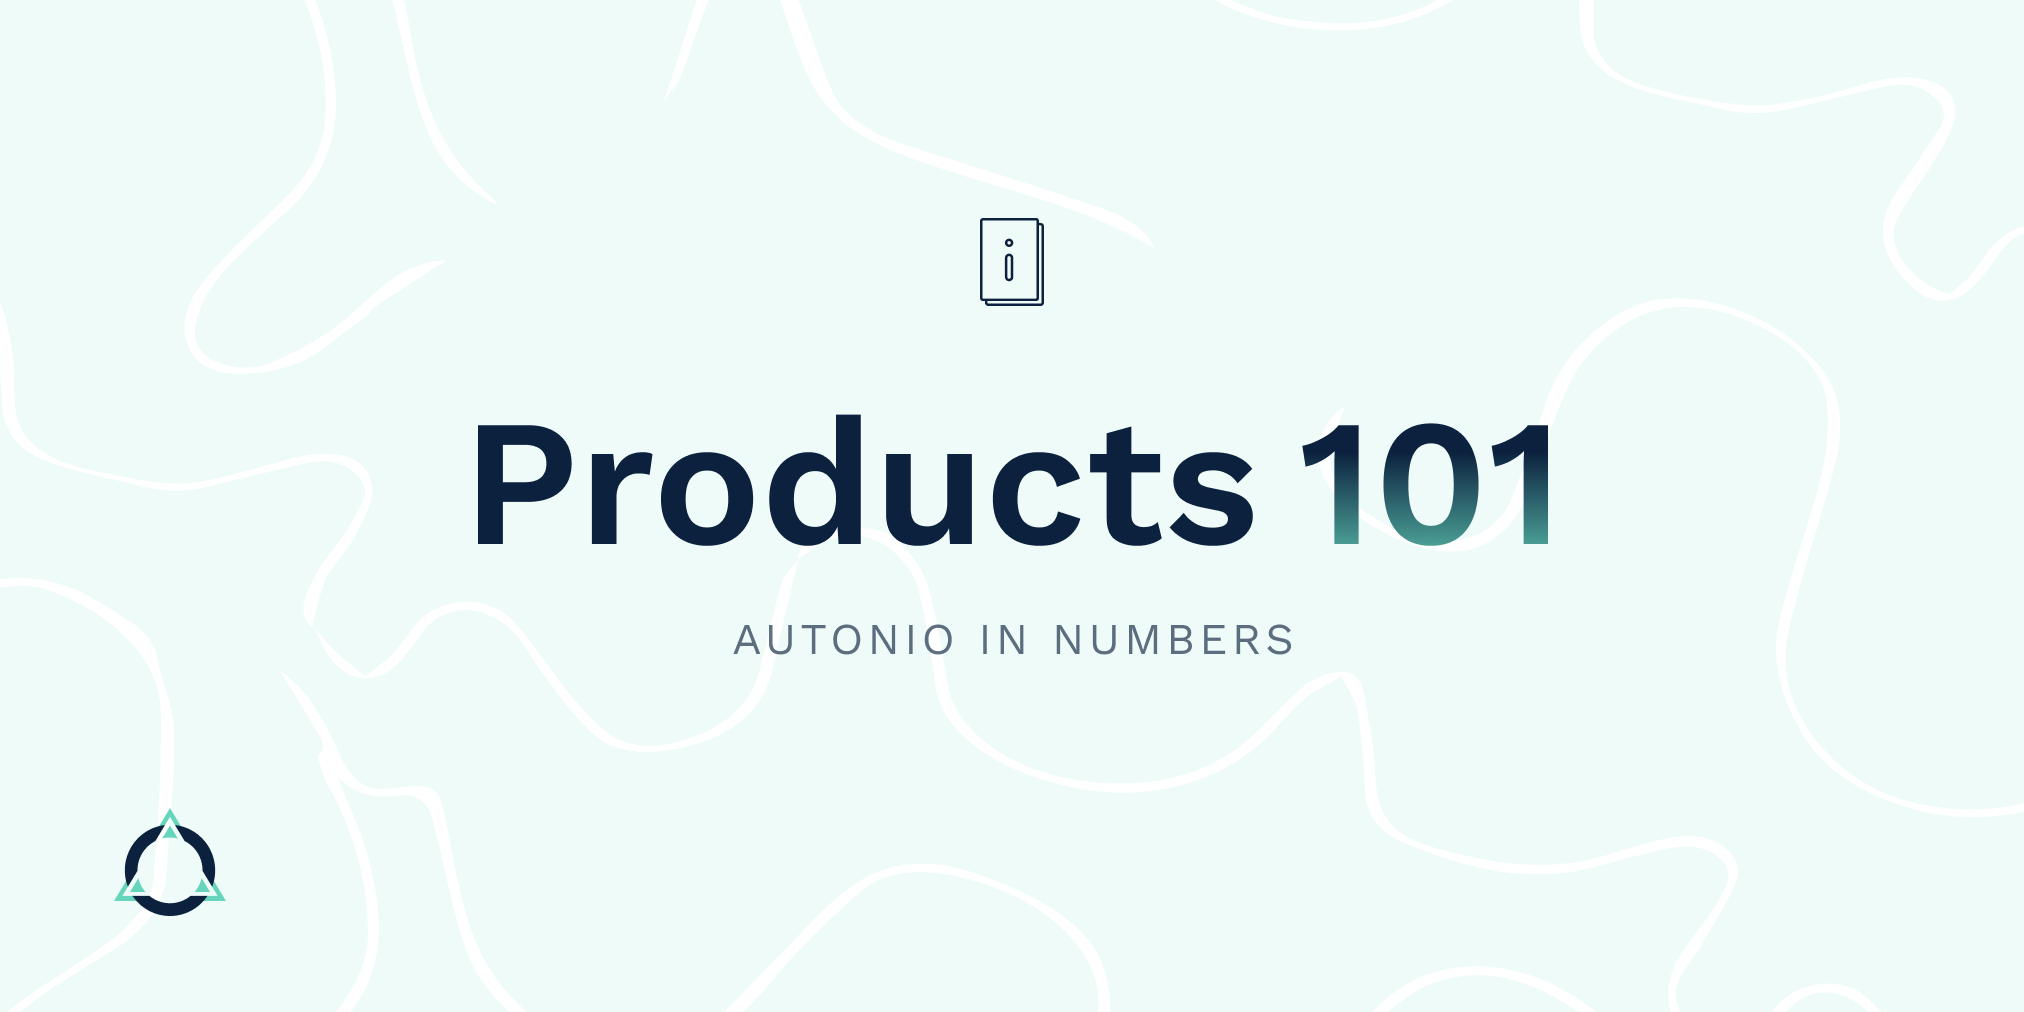 Autonio in Numbers: Analyzing The Stats